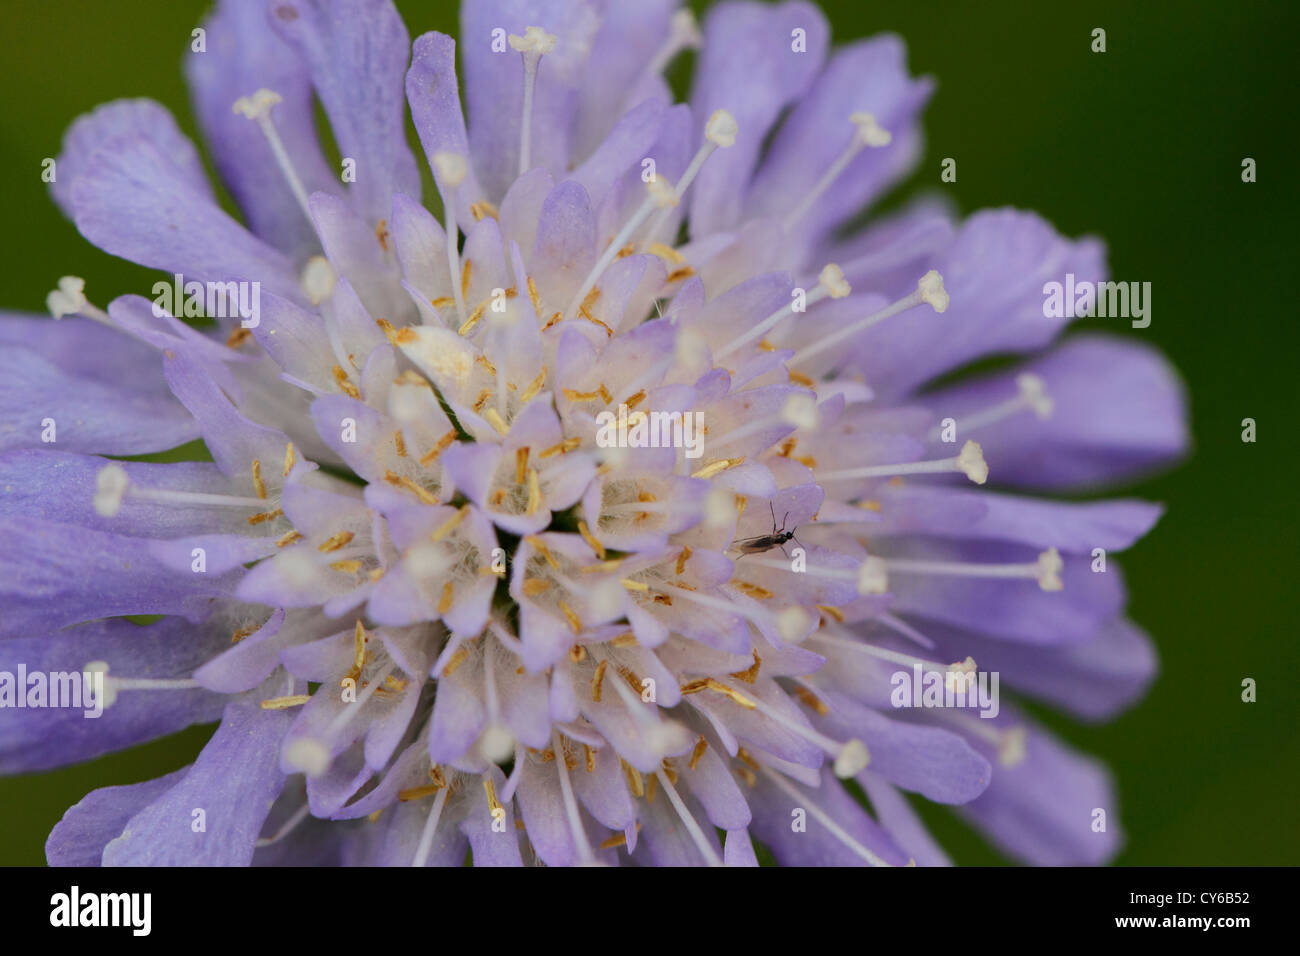 small scabious flower scabiosa columbaria, a perennial wild flower commony known as butterfly blue - Stock Image